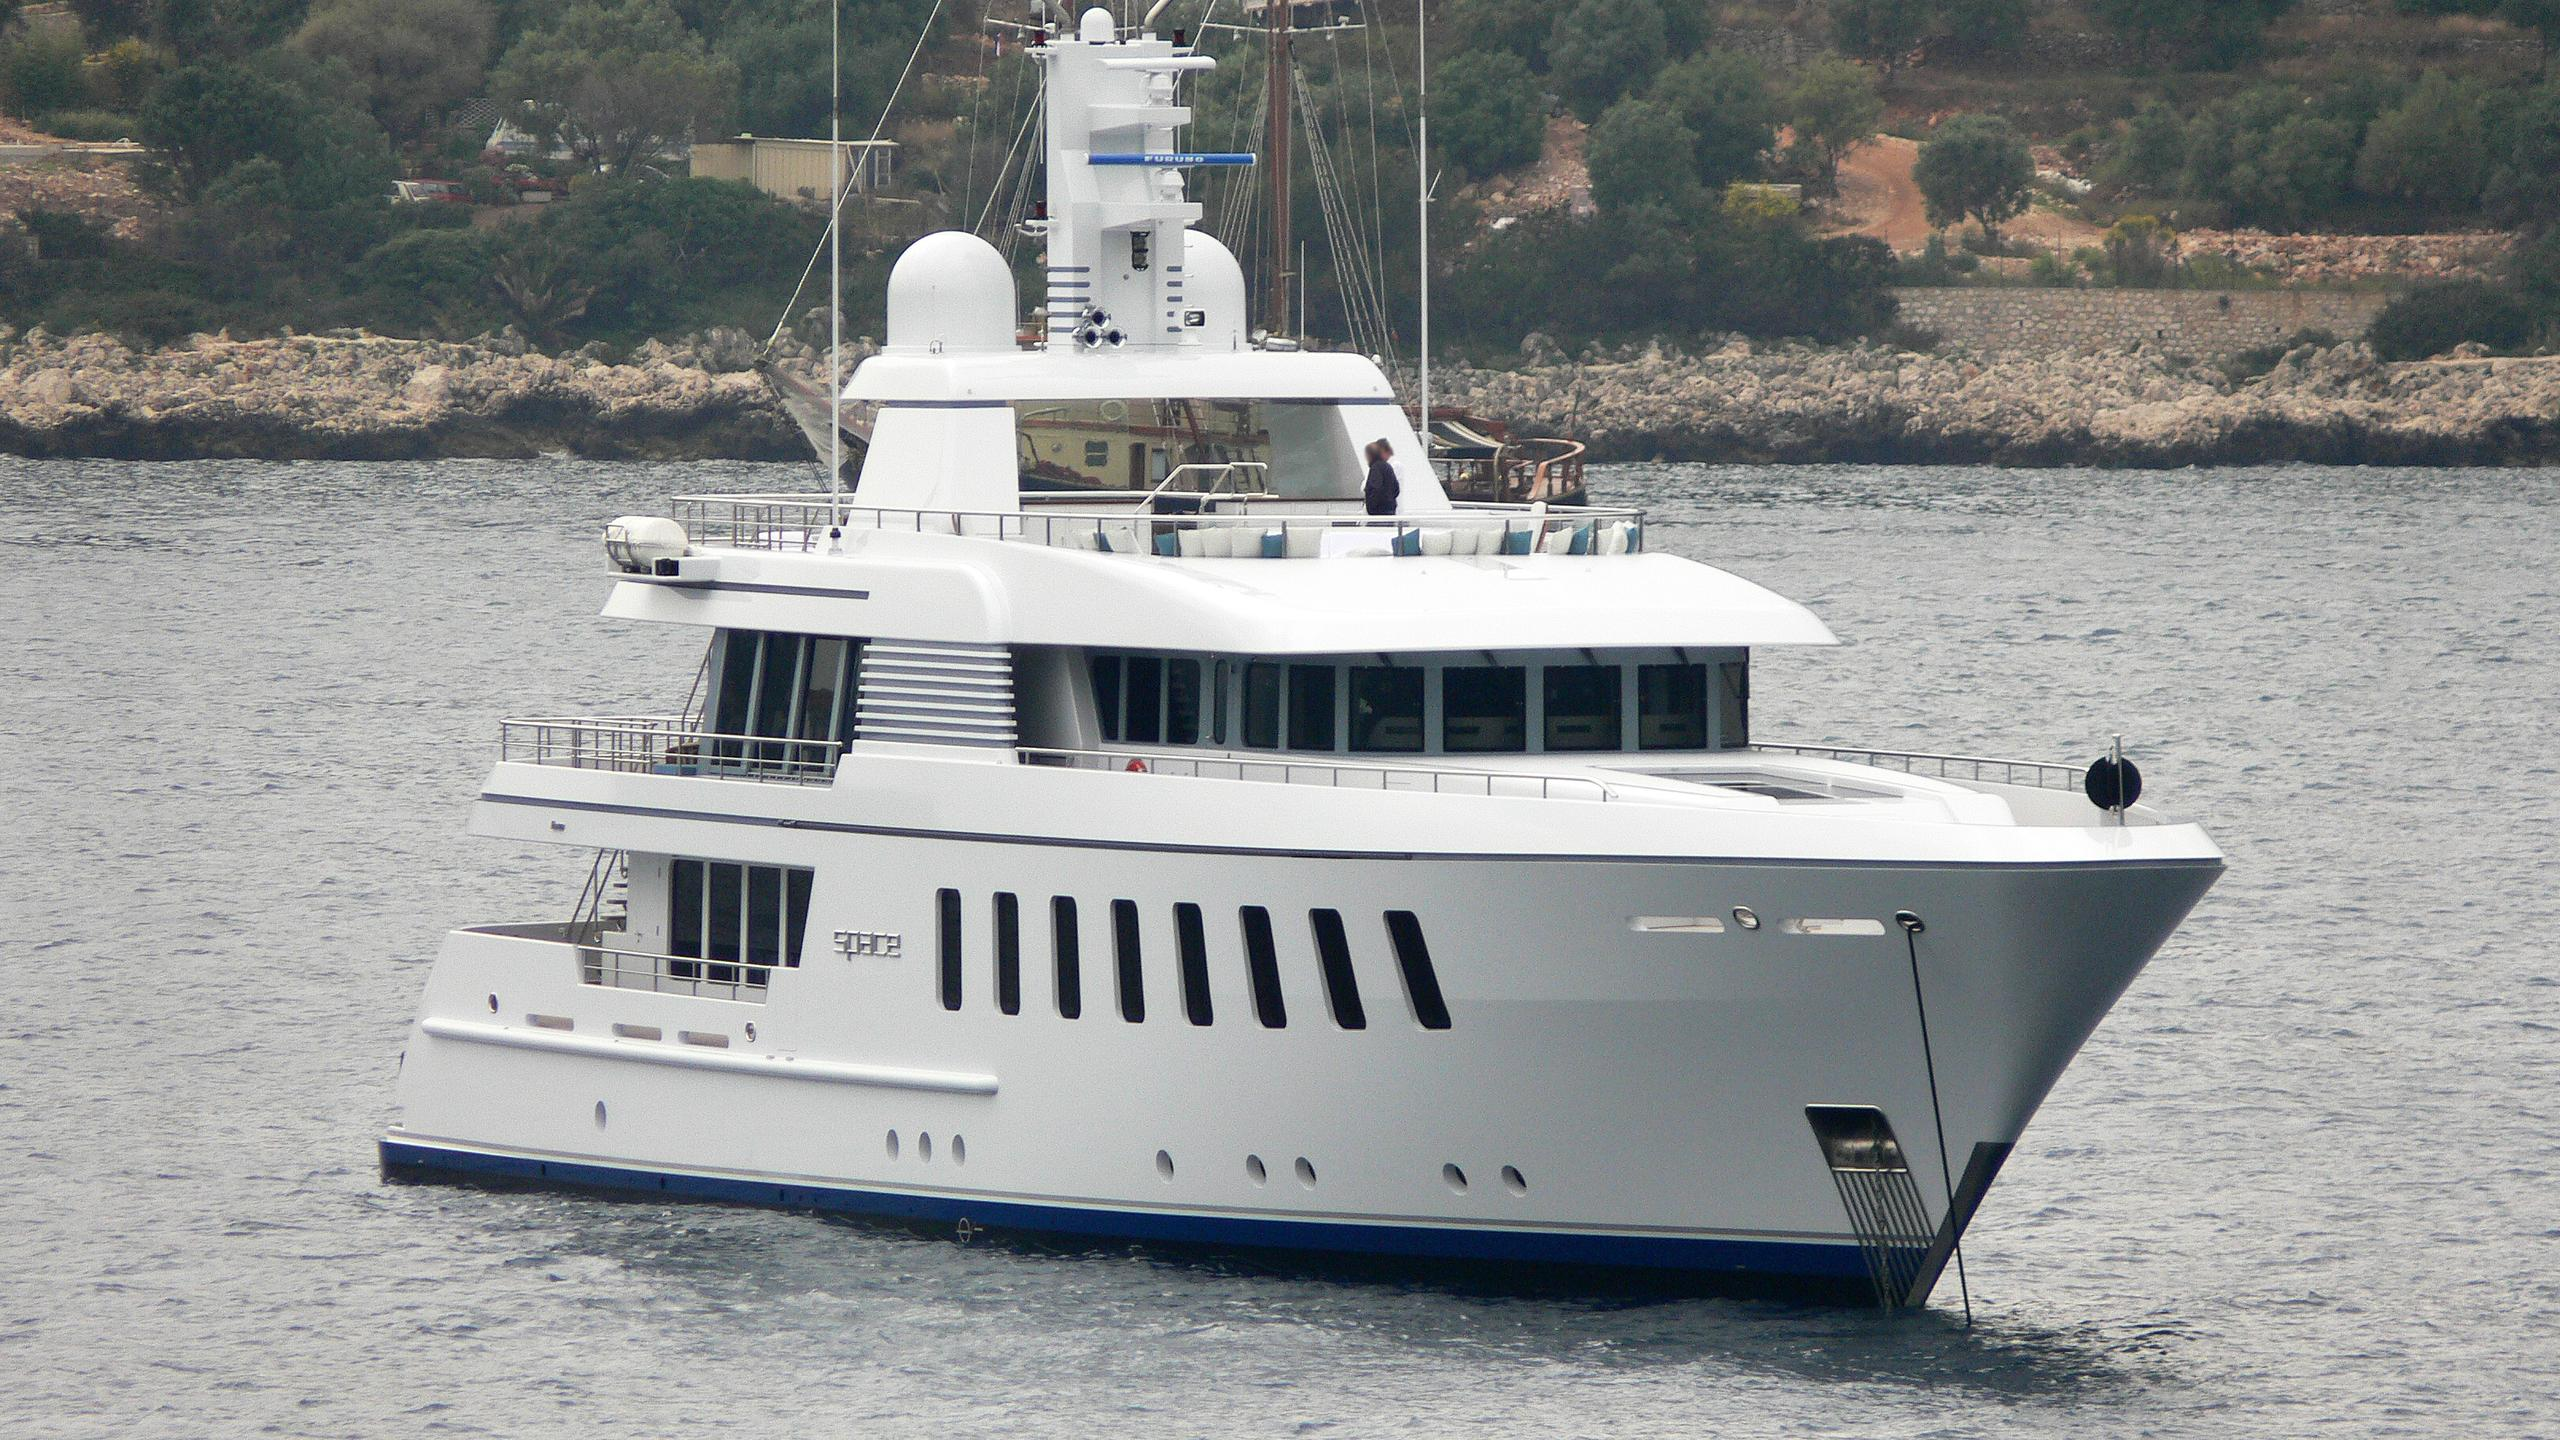 space-motor-yacht-feadship-f45-vintage-2007-45m-bow